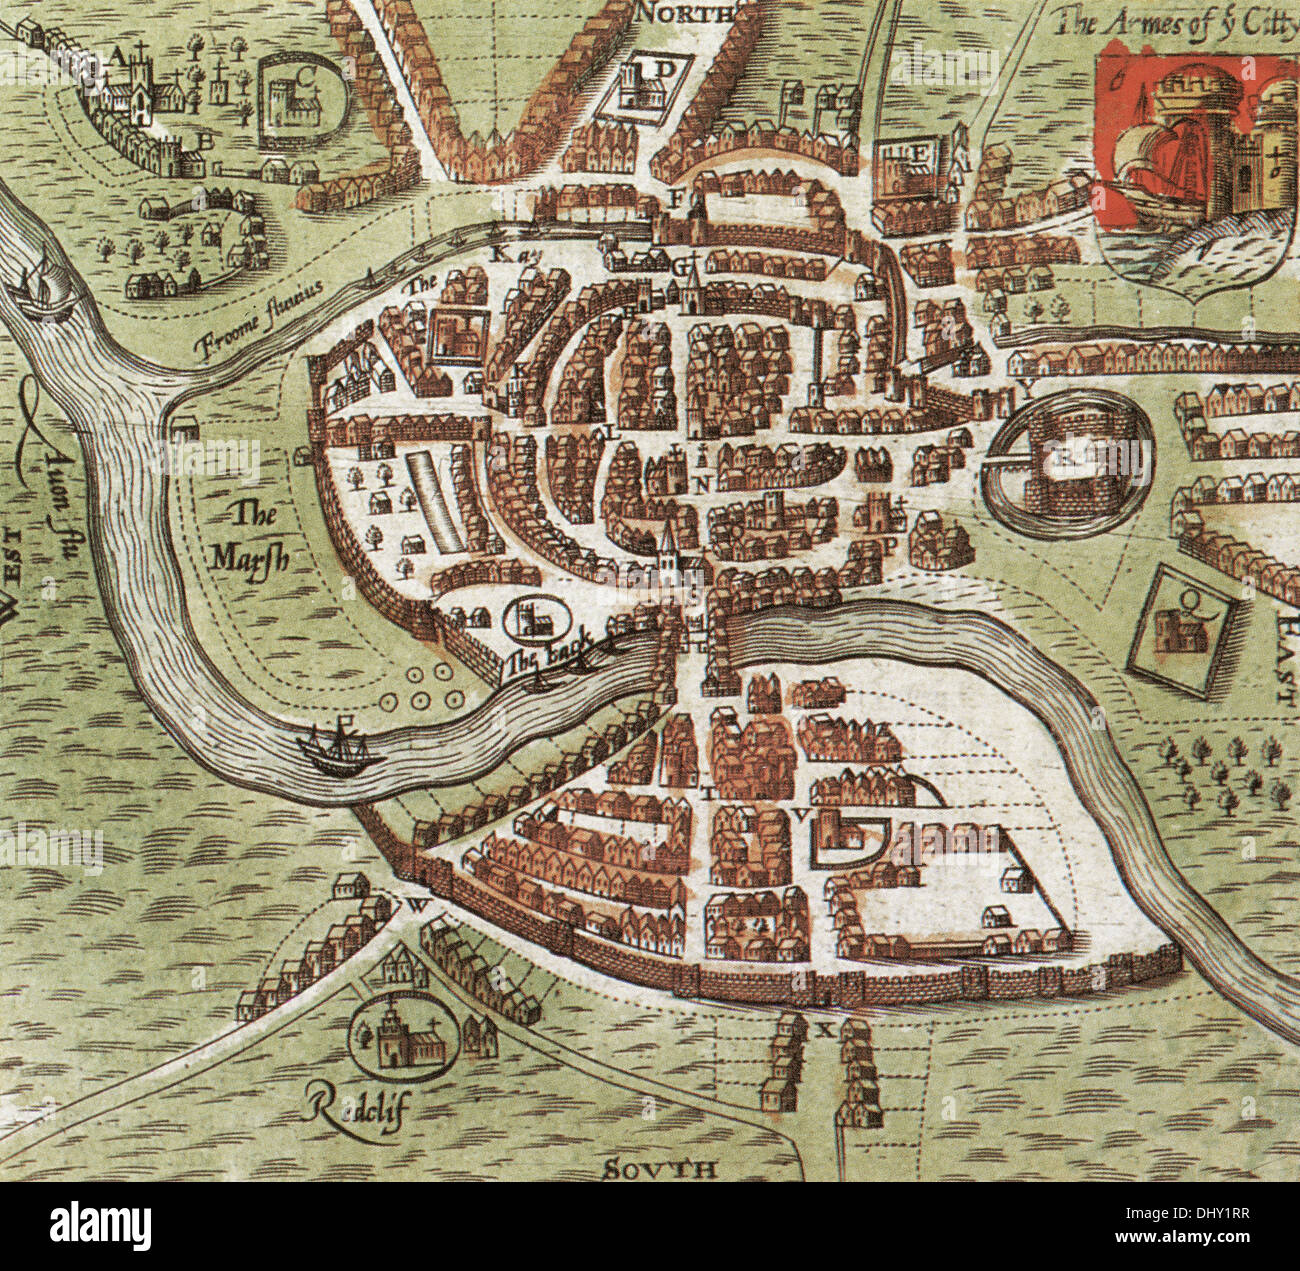 Old map of Bristol by John Speed